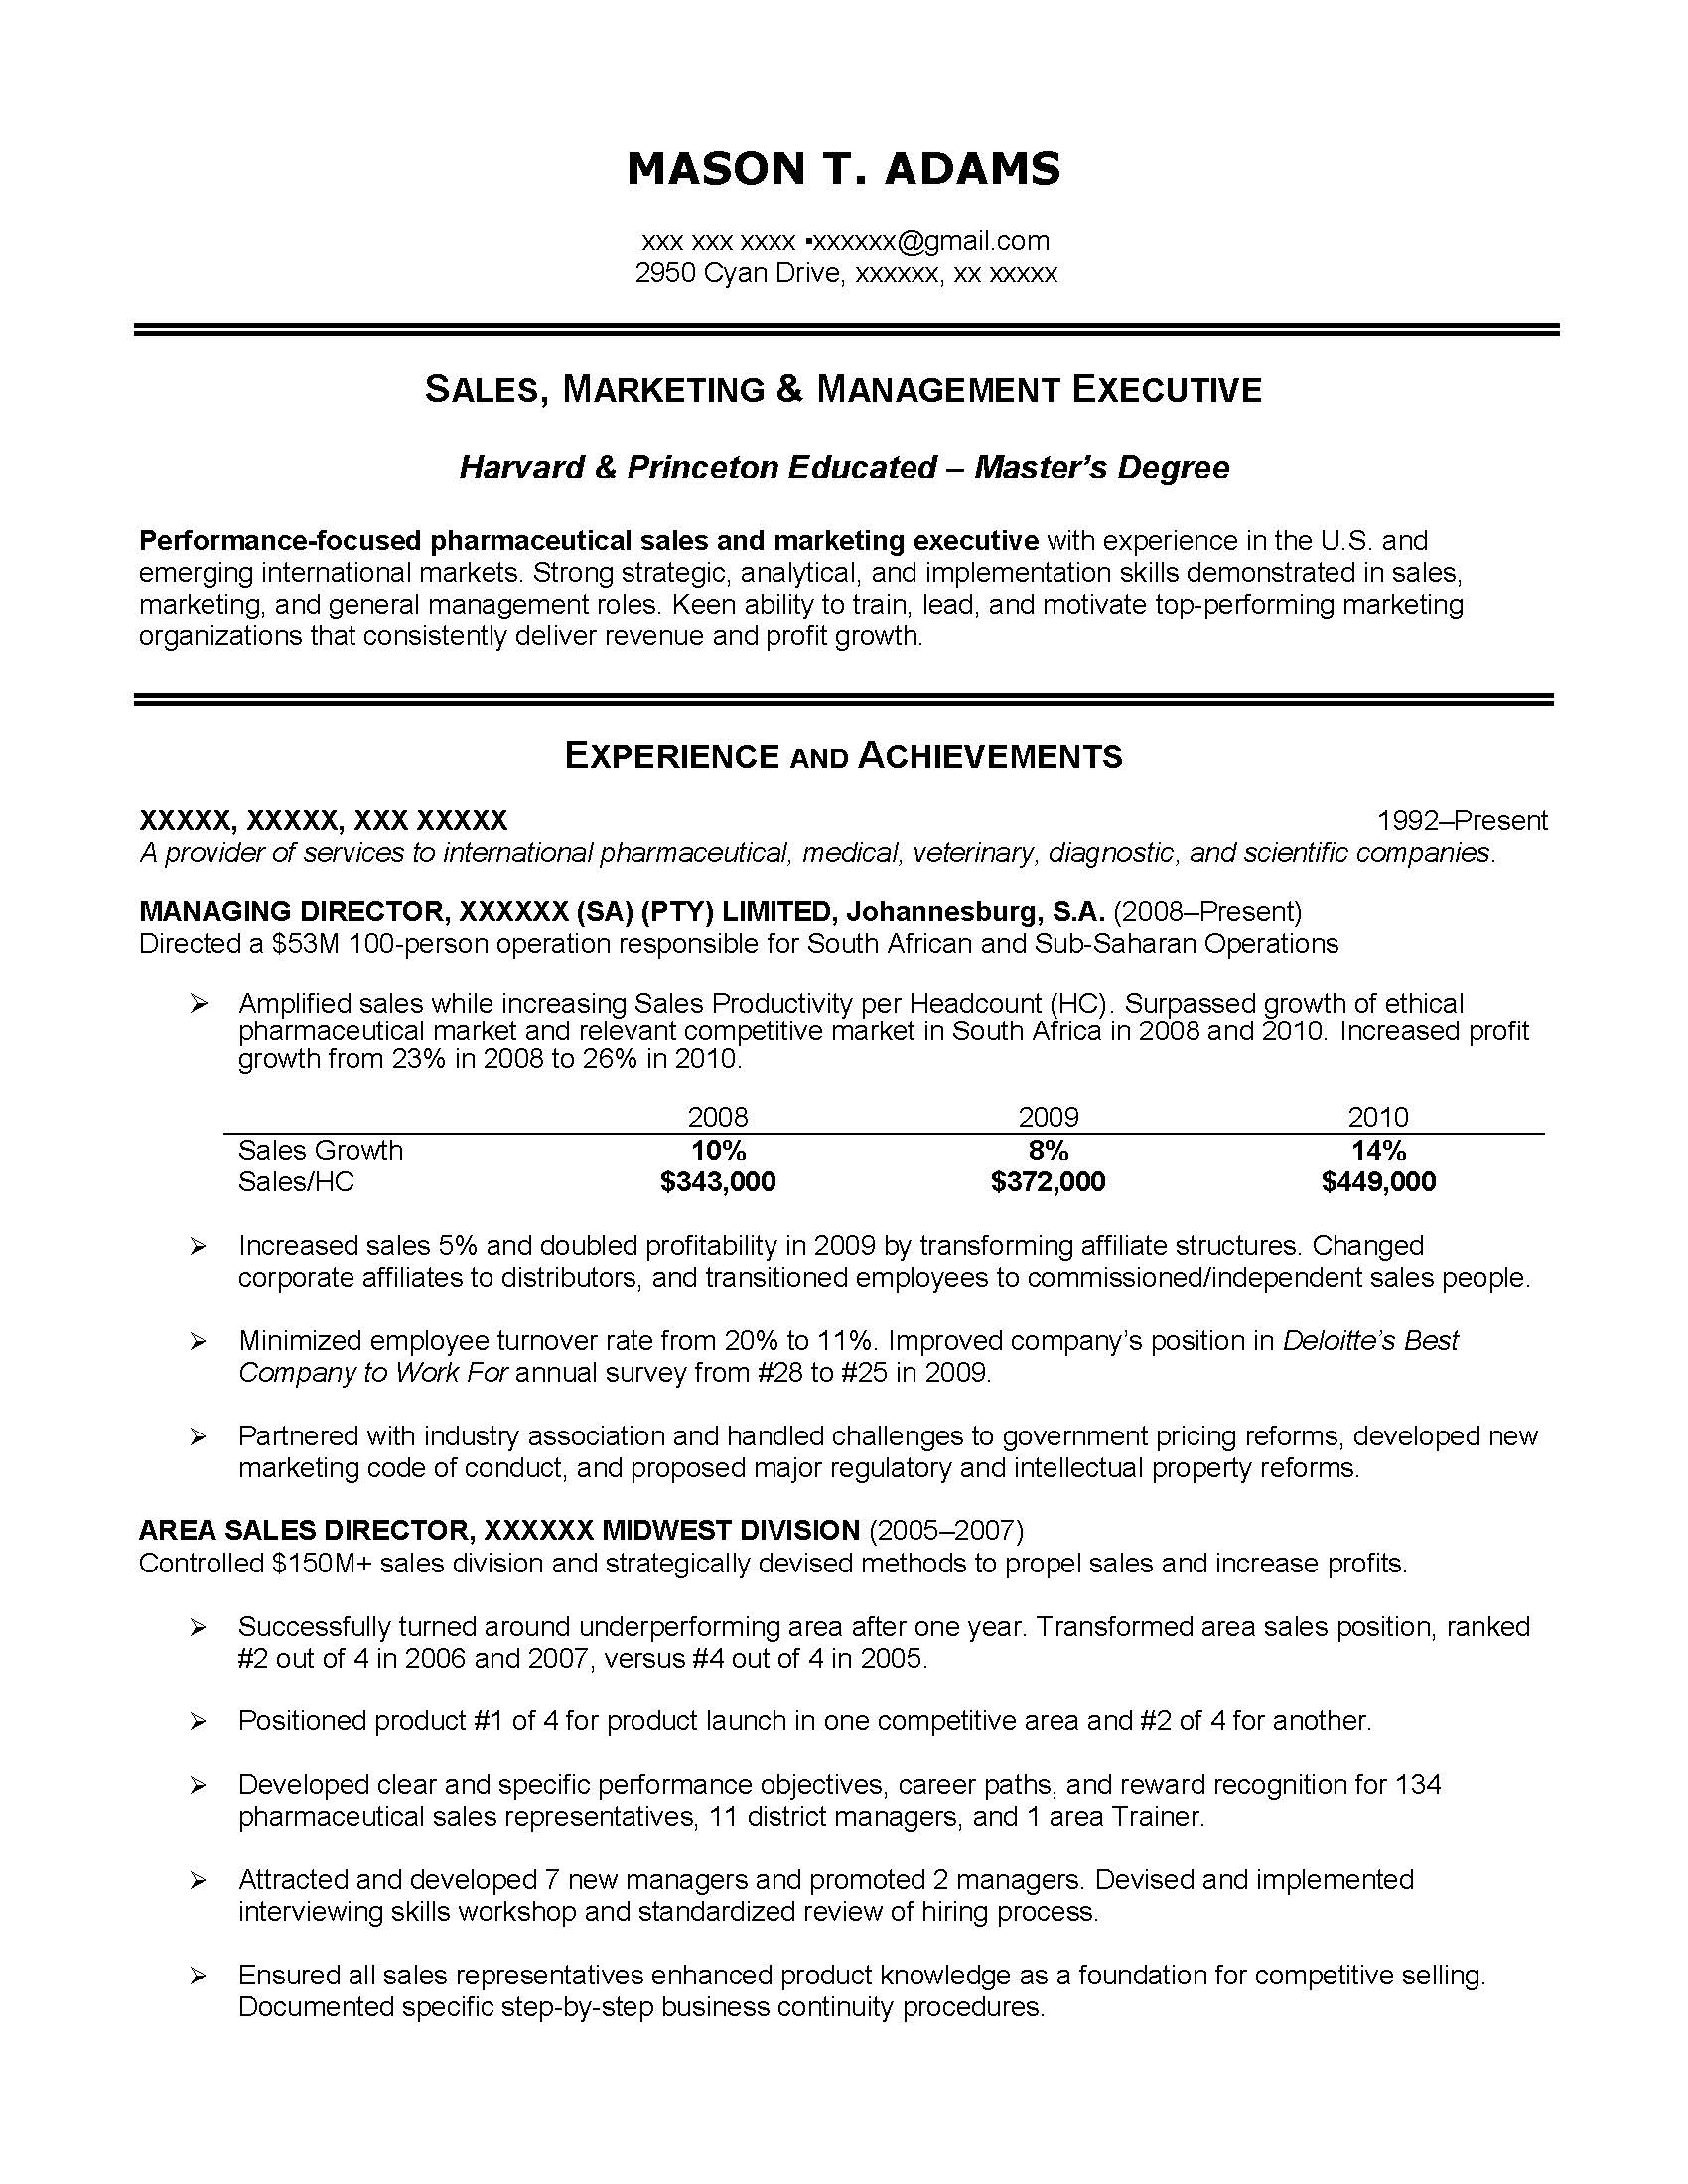 resume samples elite resume writing executive s resume sample provided by elite resume writing services